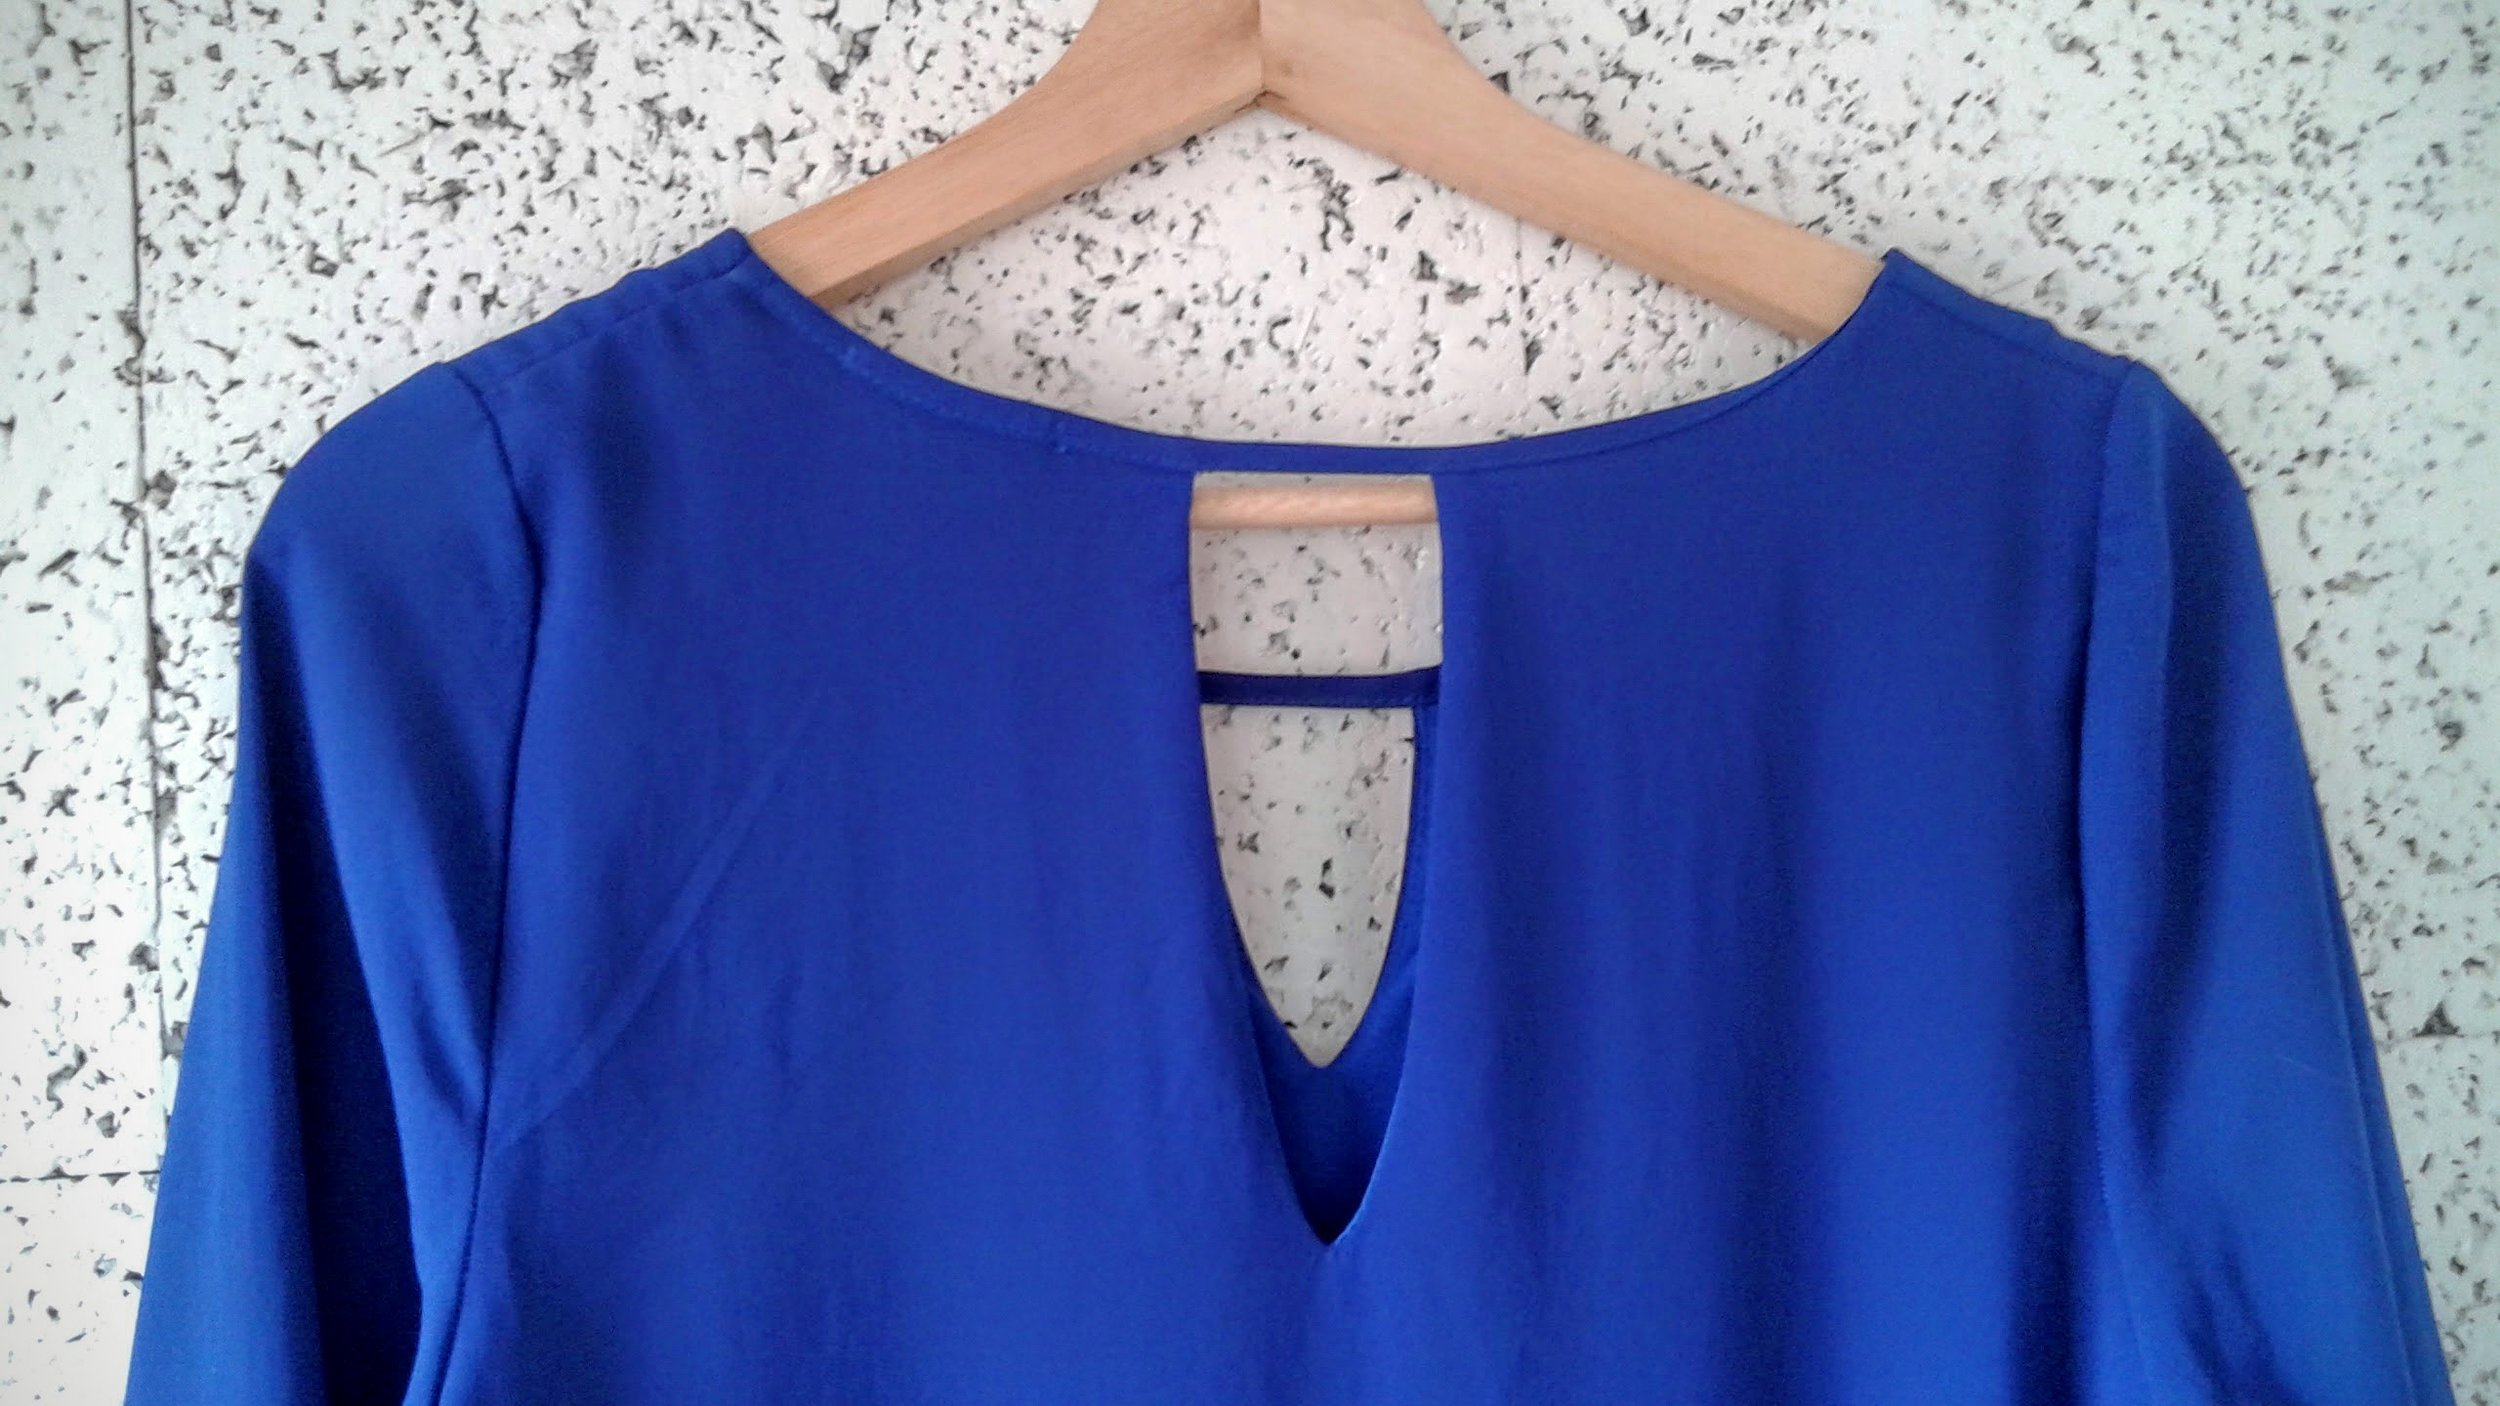 Everly back detail